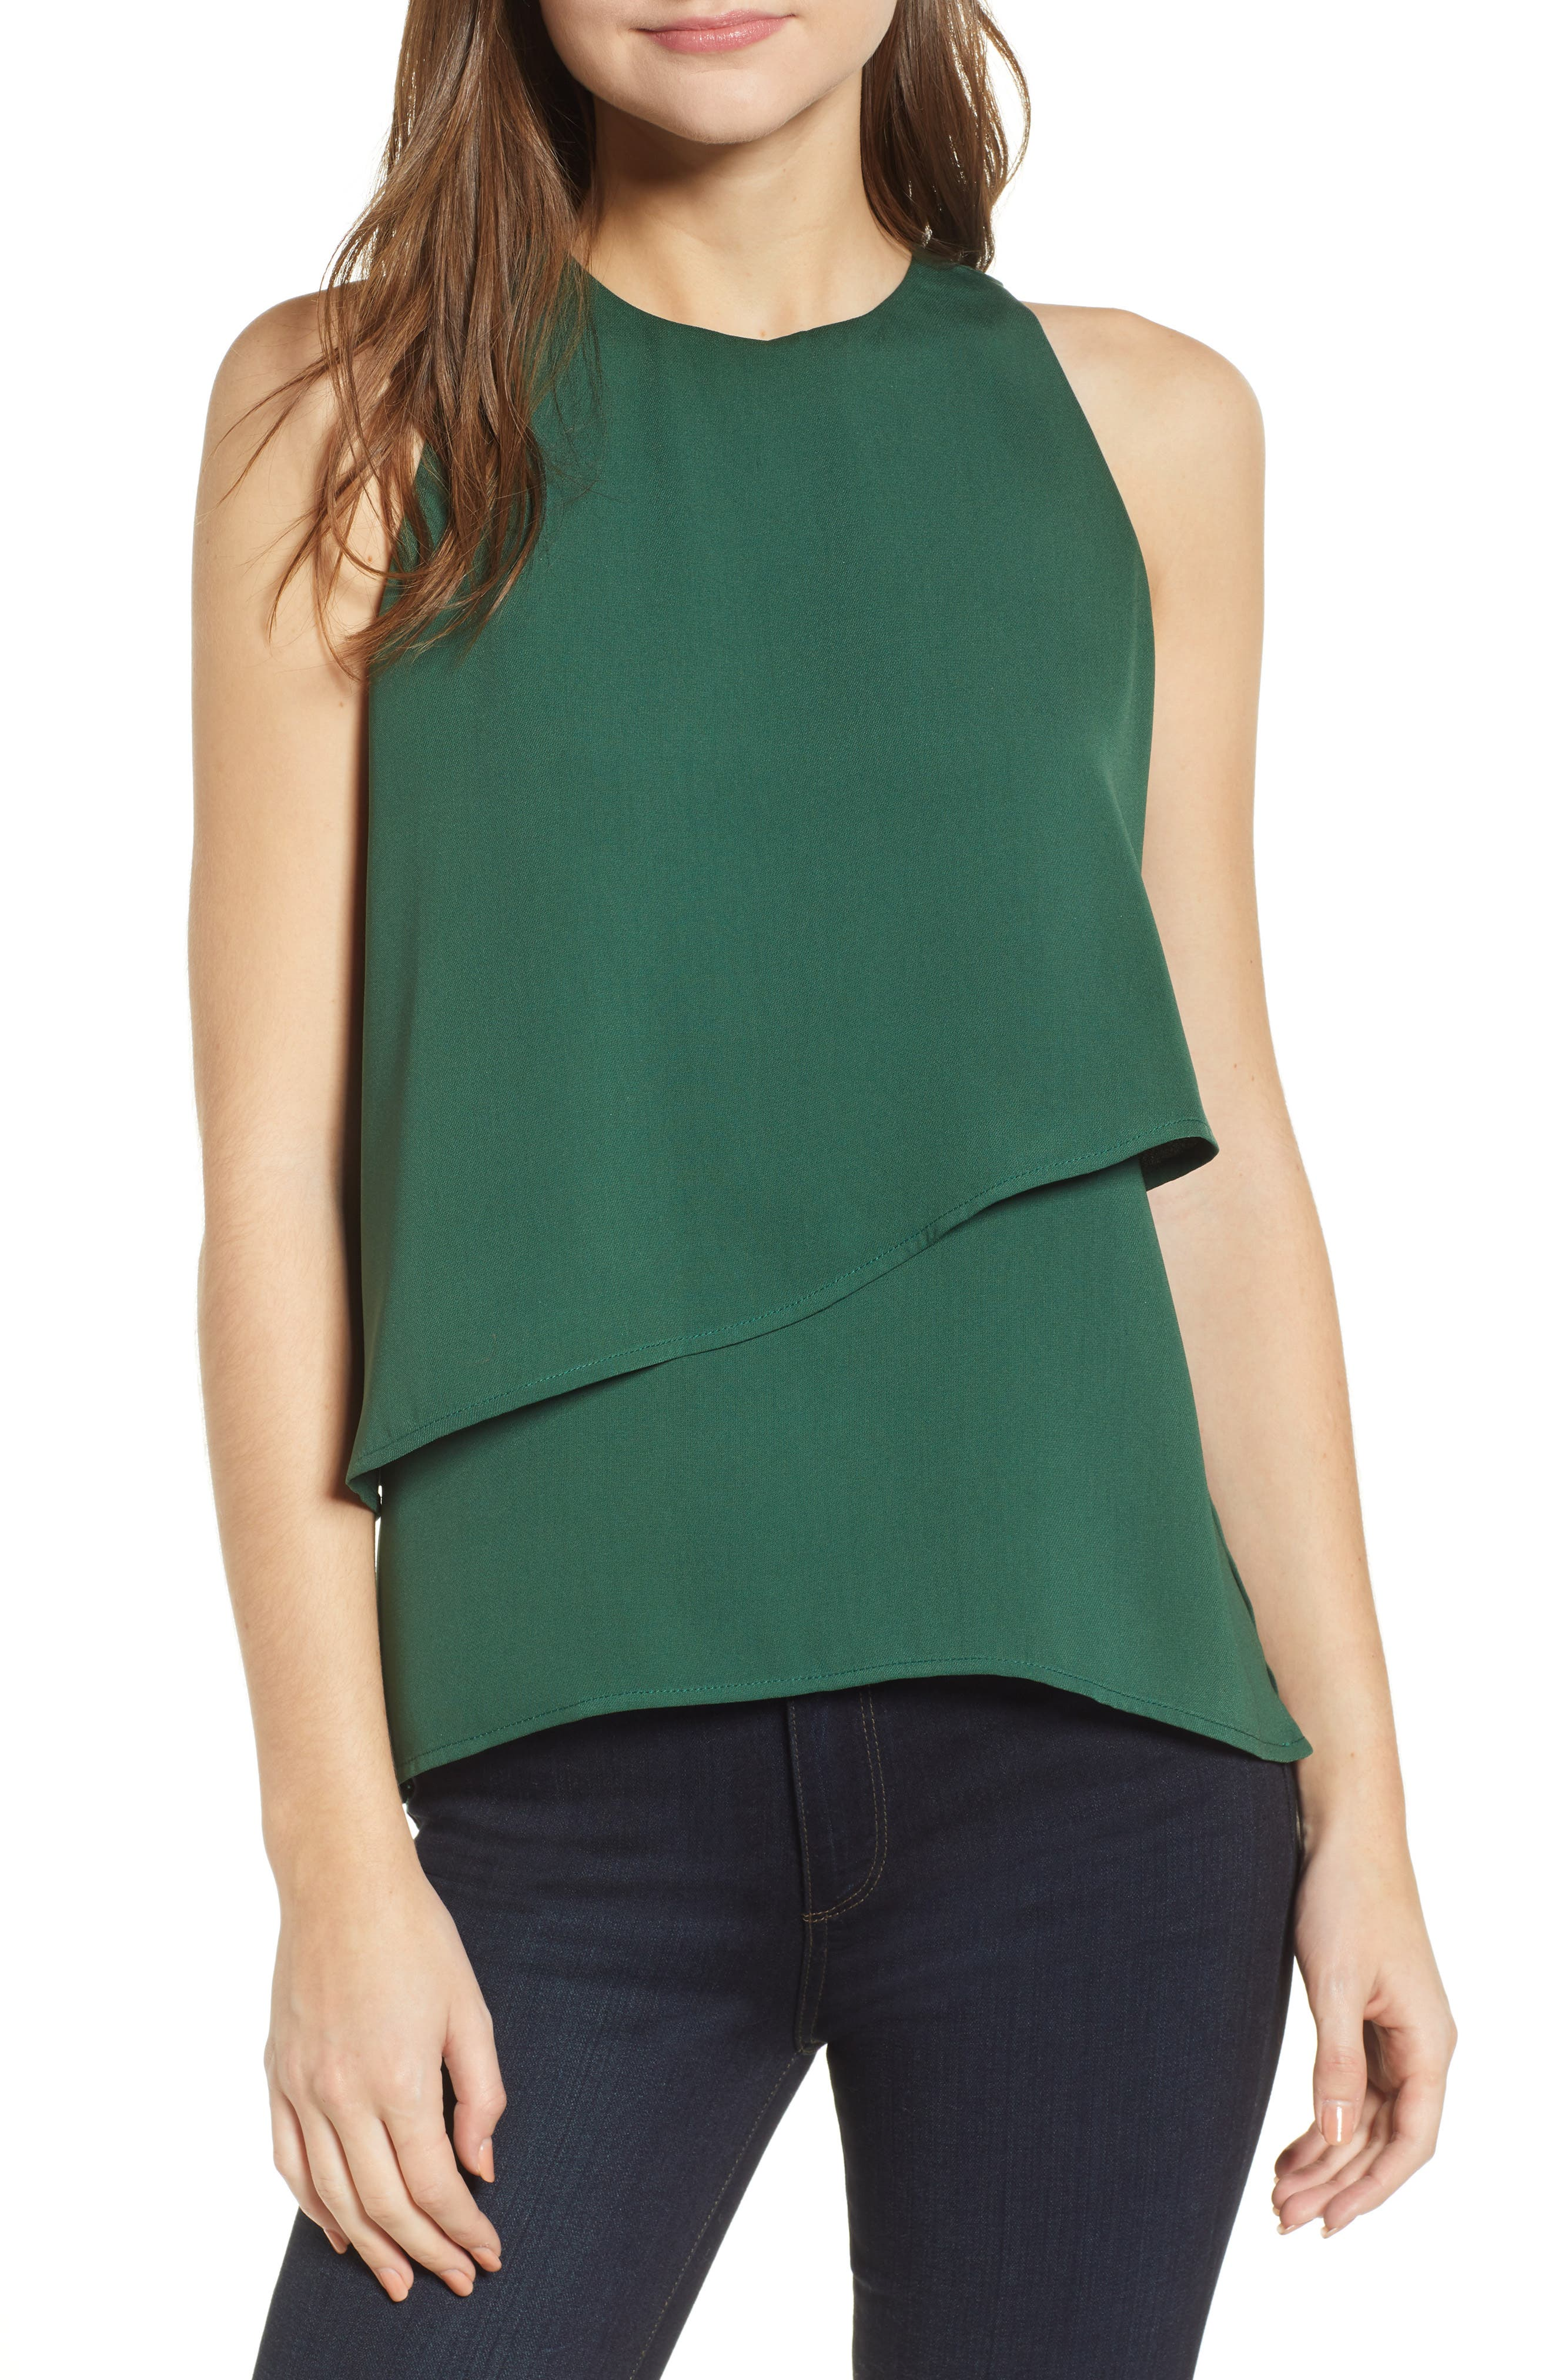 CHELSEA28, Tiered Sleeveless Top, Main thumbnail 1, color, 301